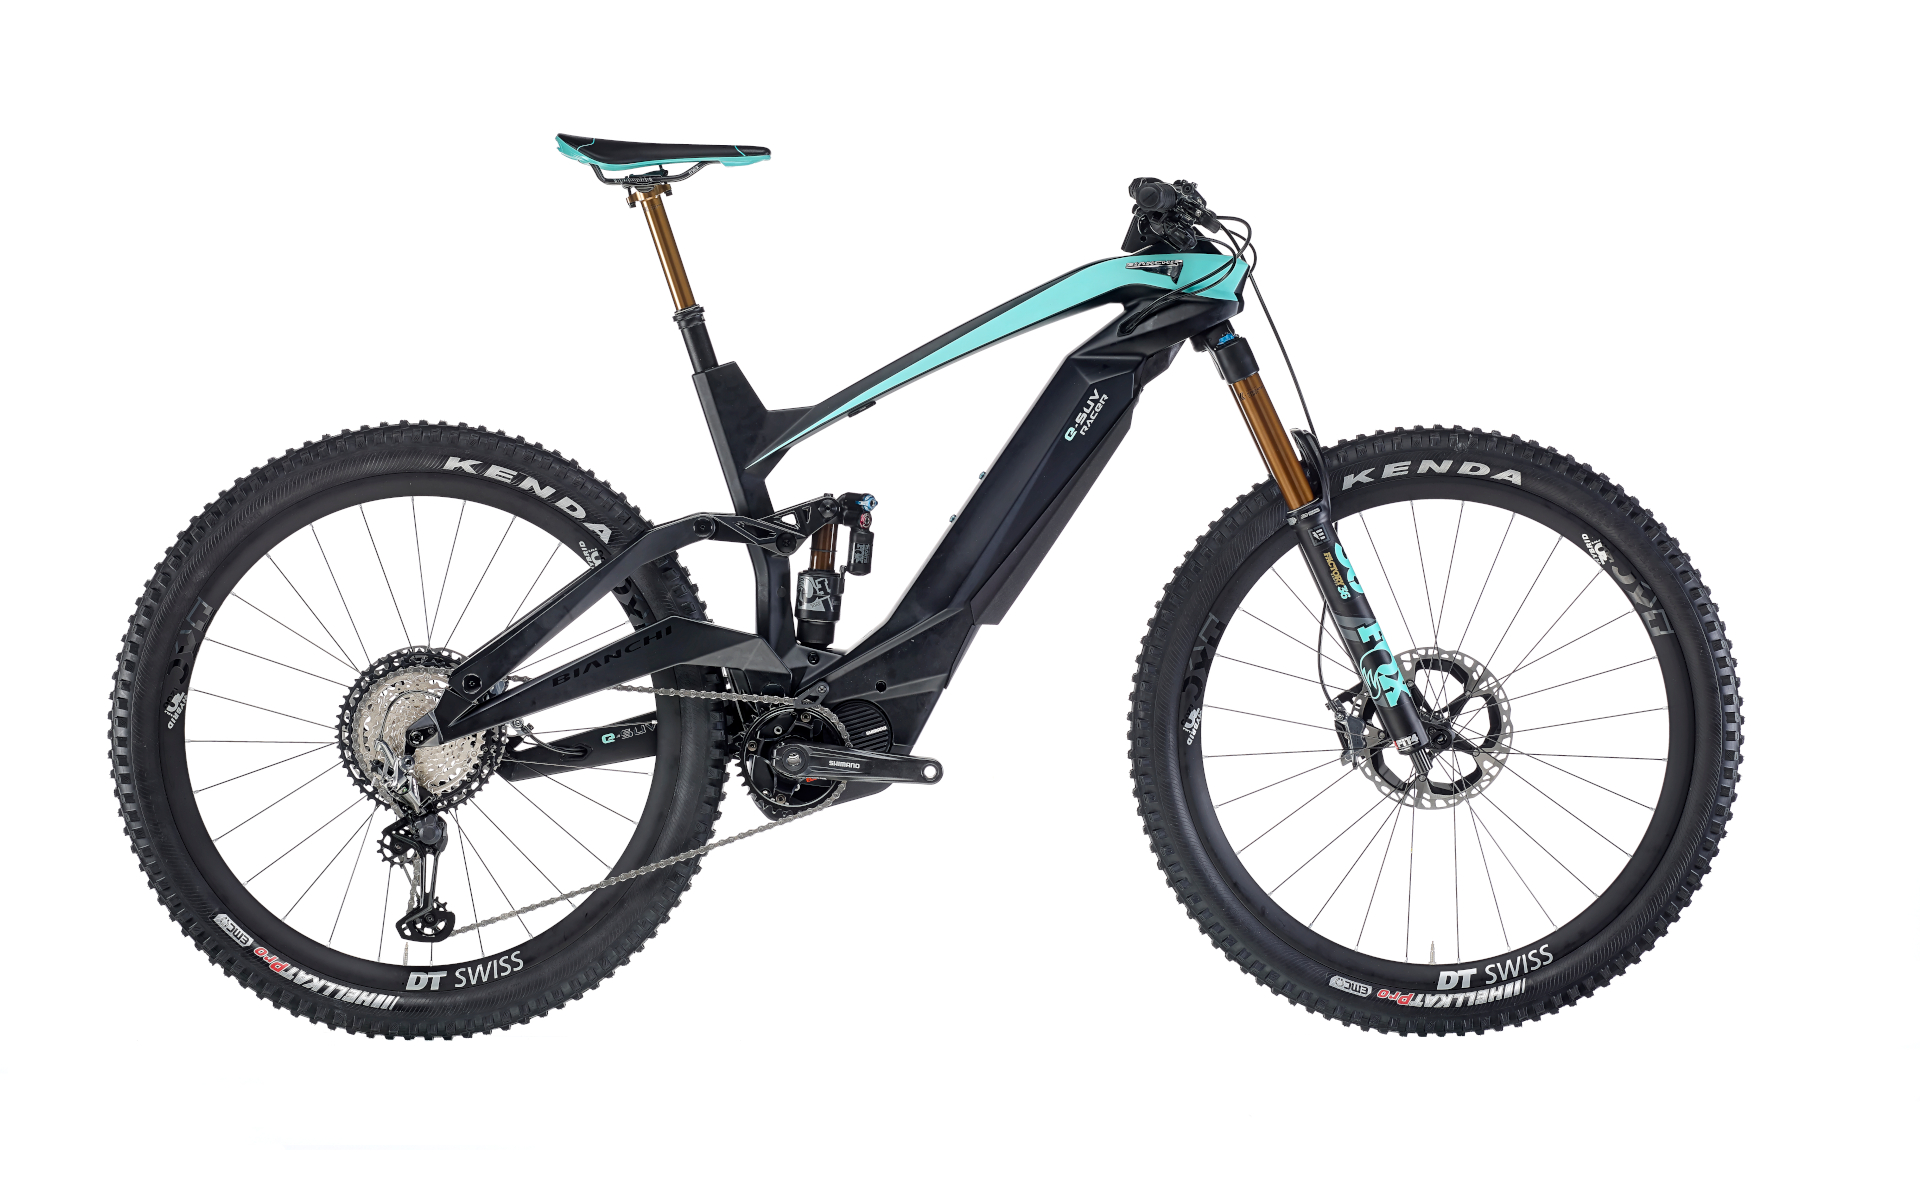 XTR 1X12SP – AVAILABLE FROM MARCH 2020